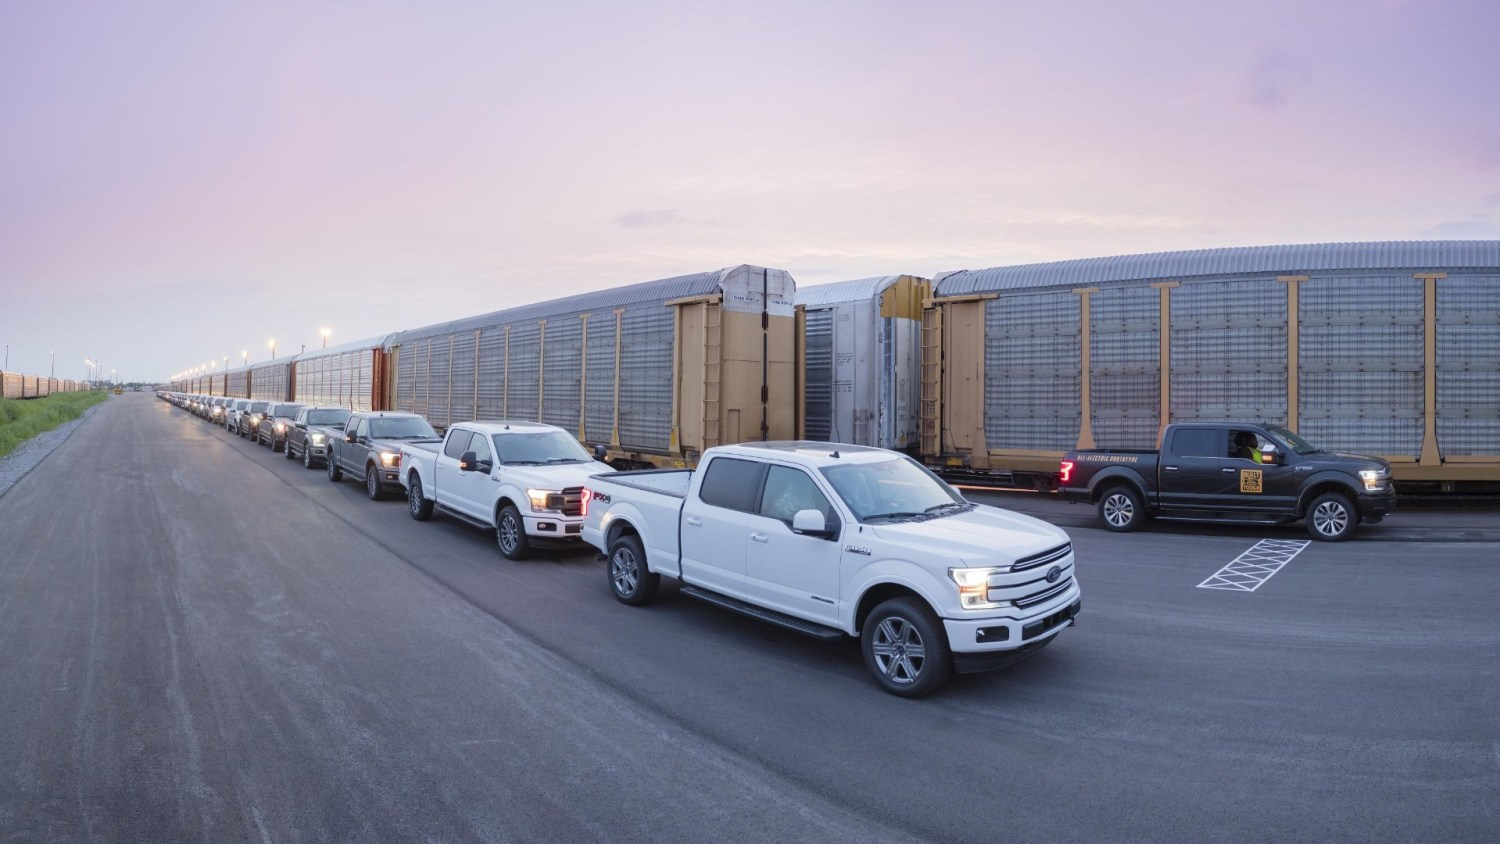 Electric Ford F-150 towing train